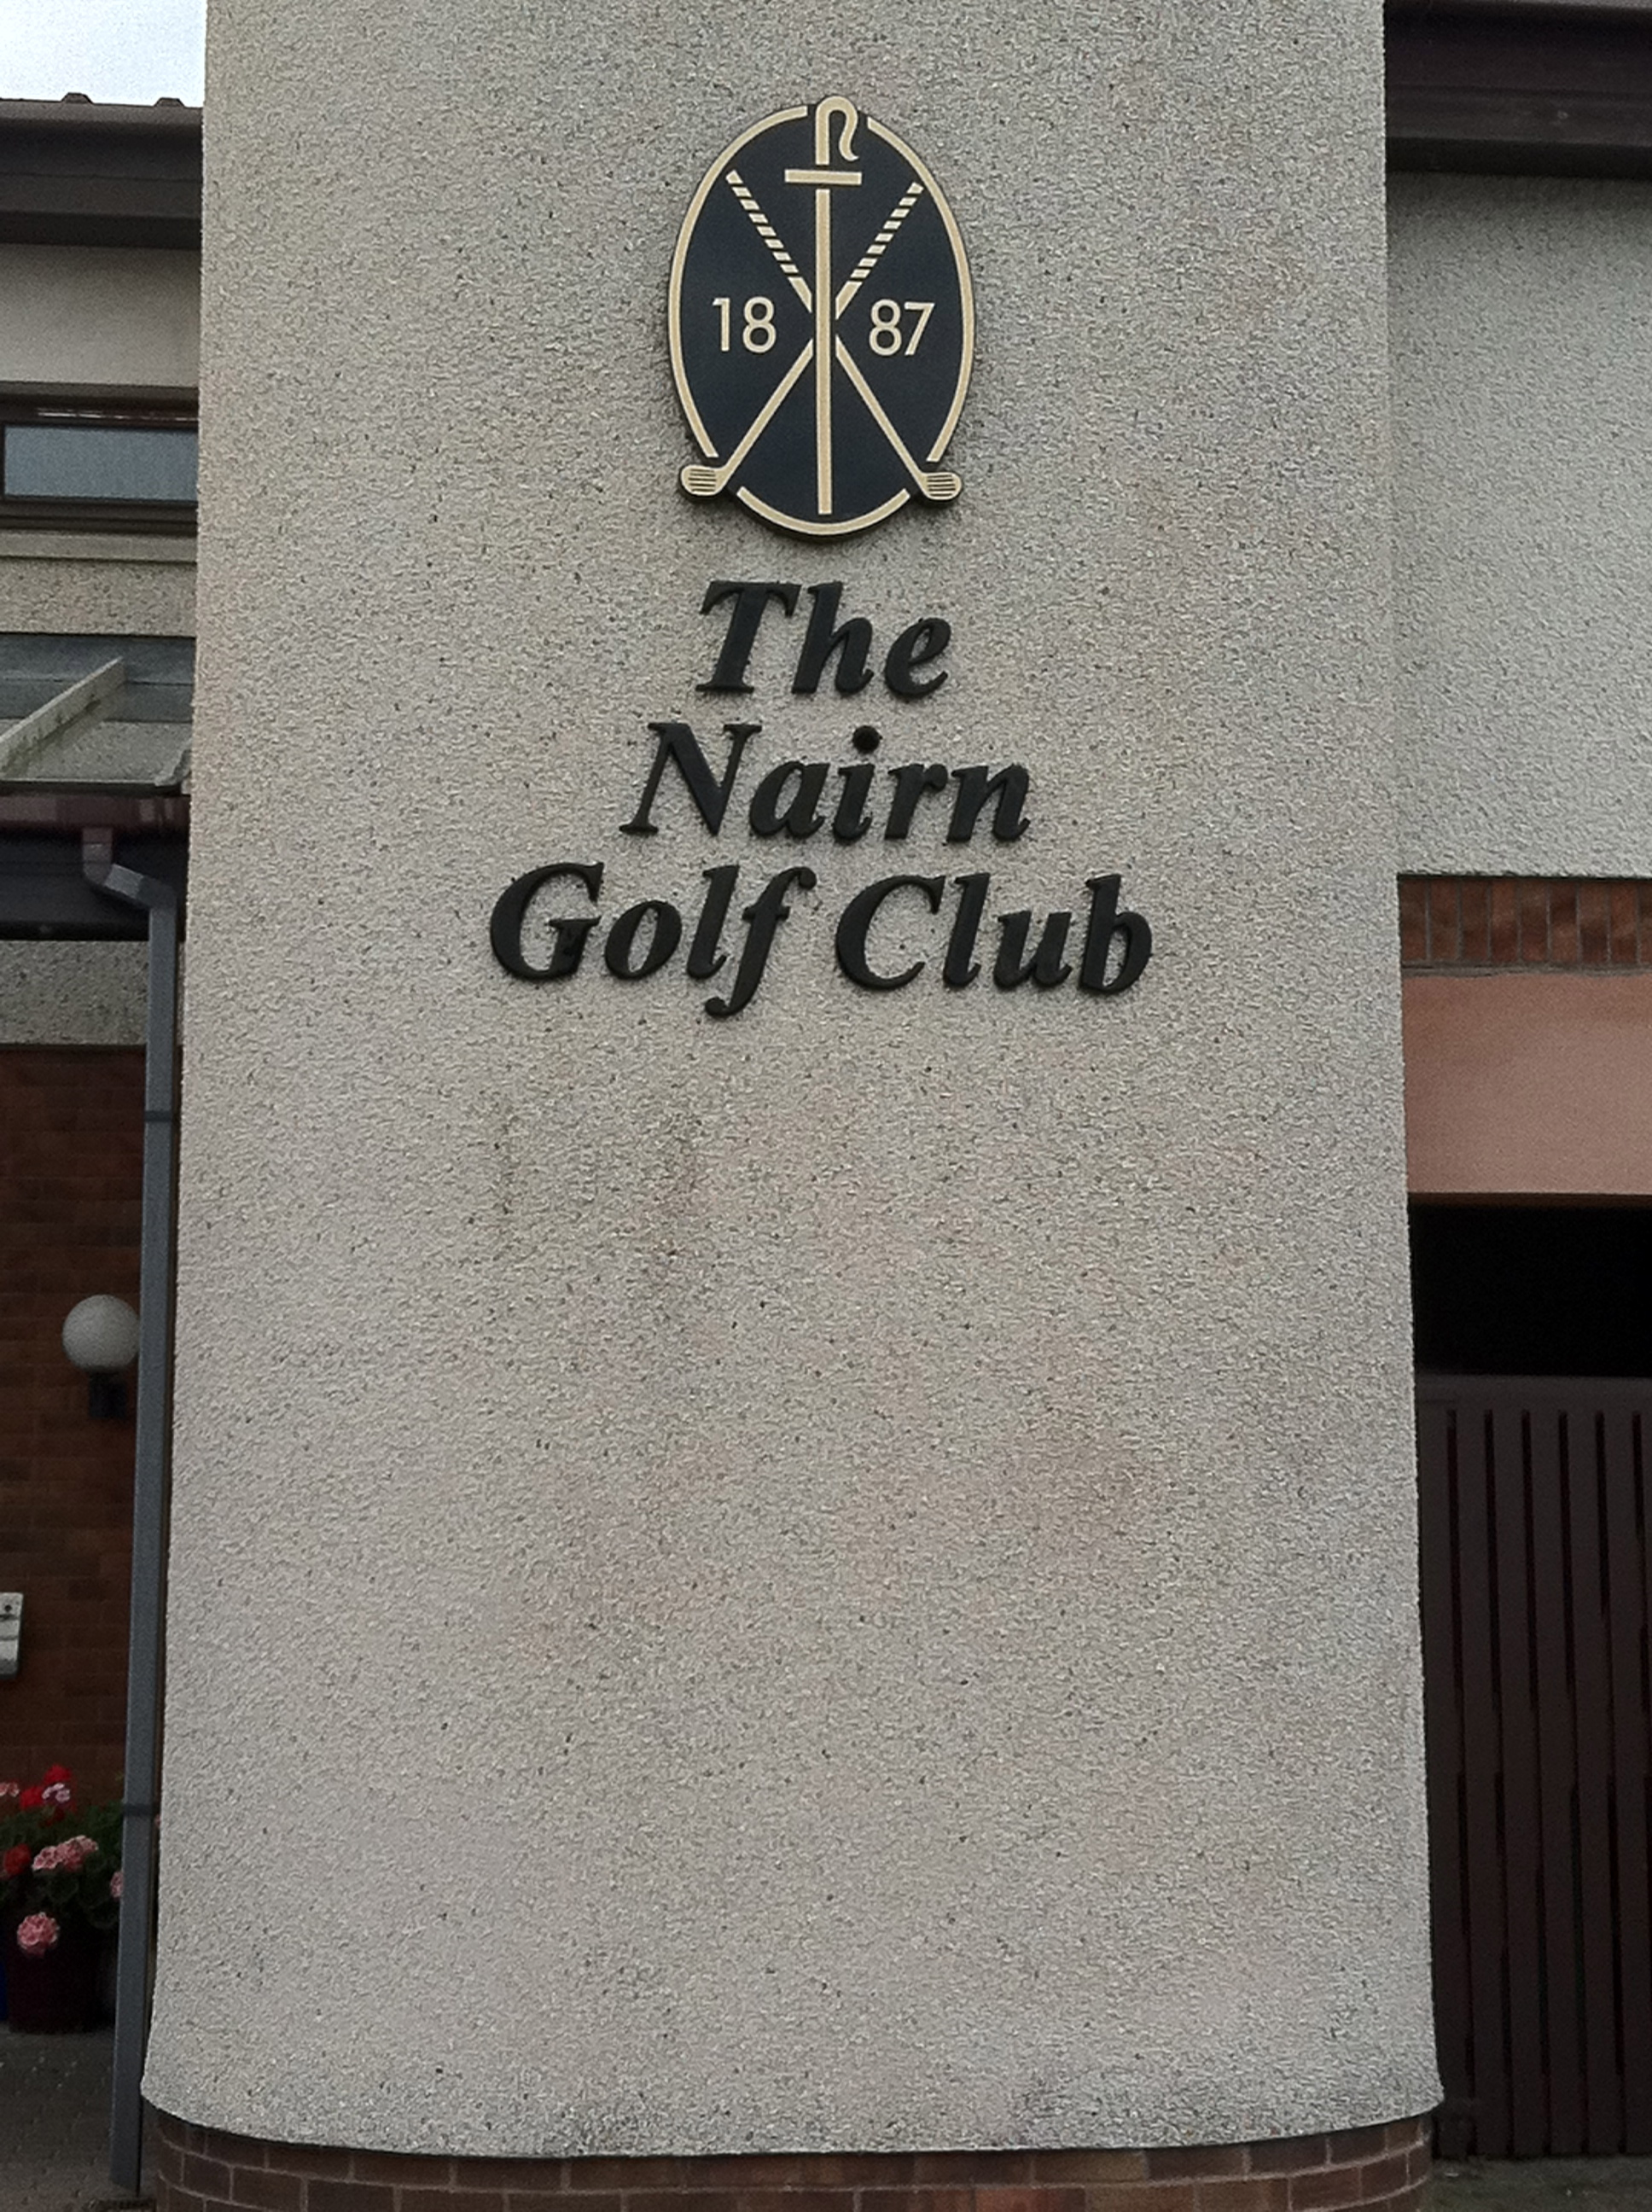 The Narin Golf Club